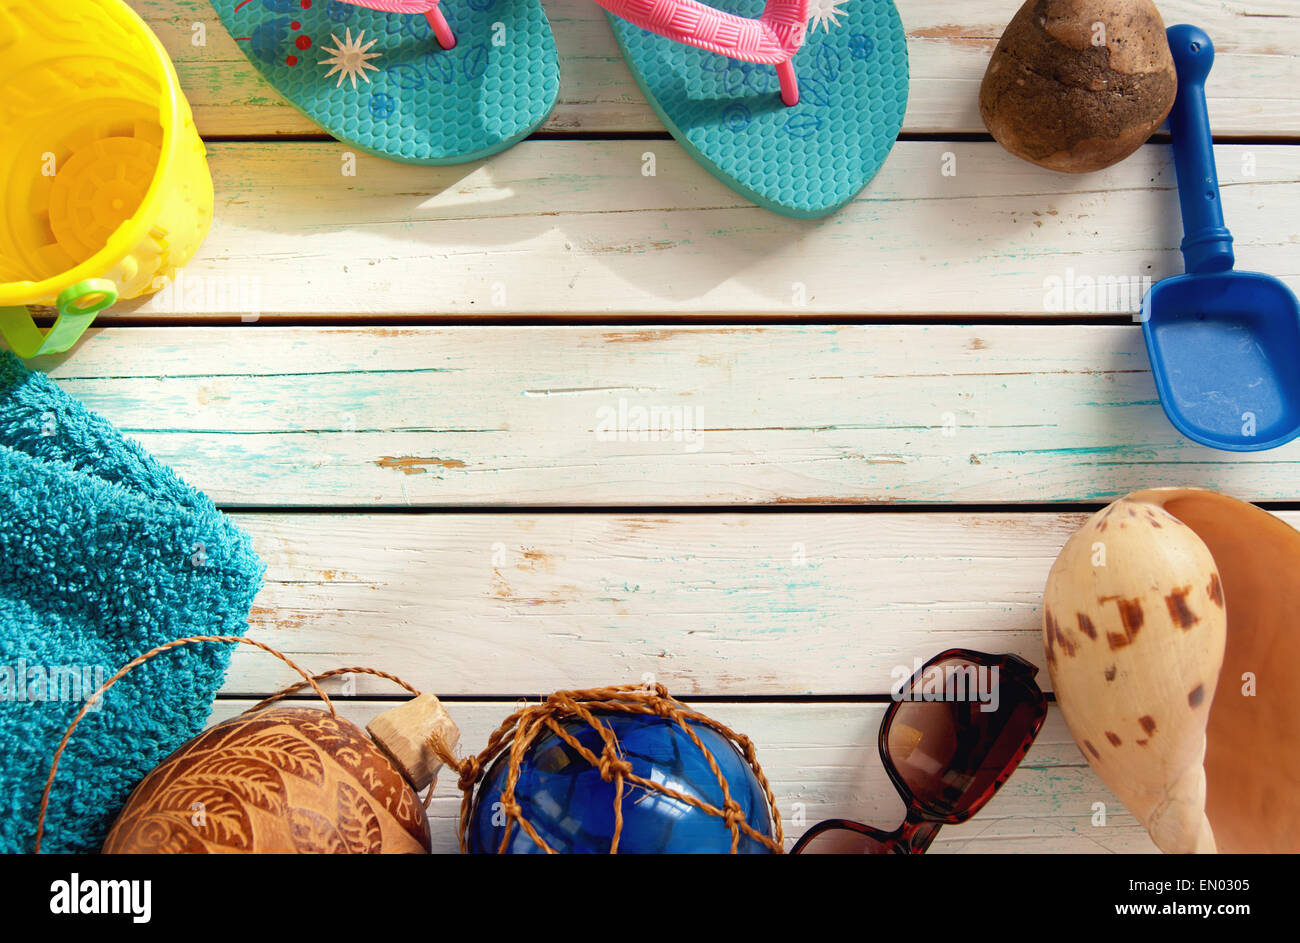 Summer vacation holiday background with space for advertising - Stock Image